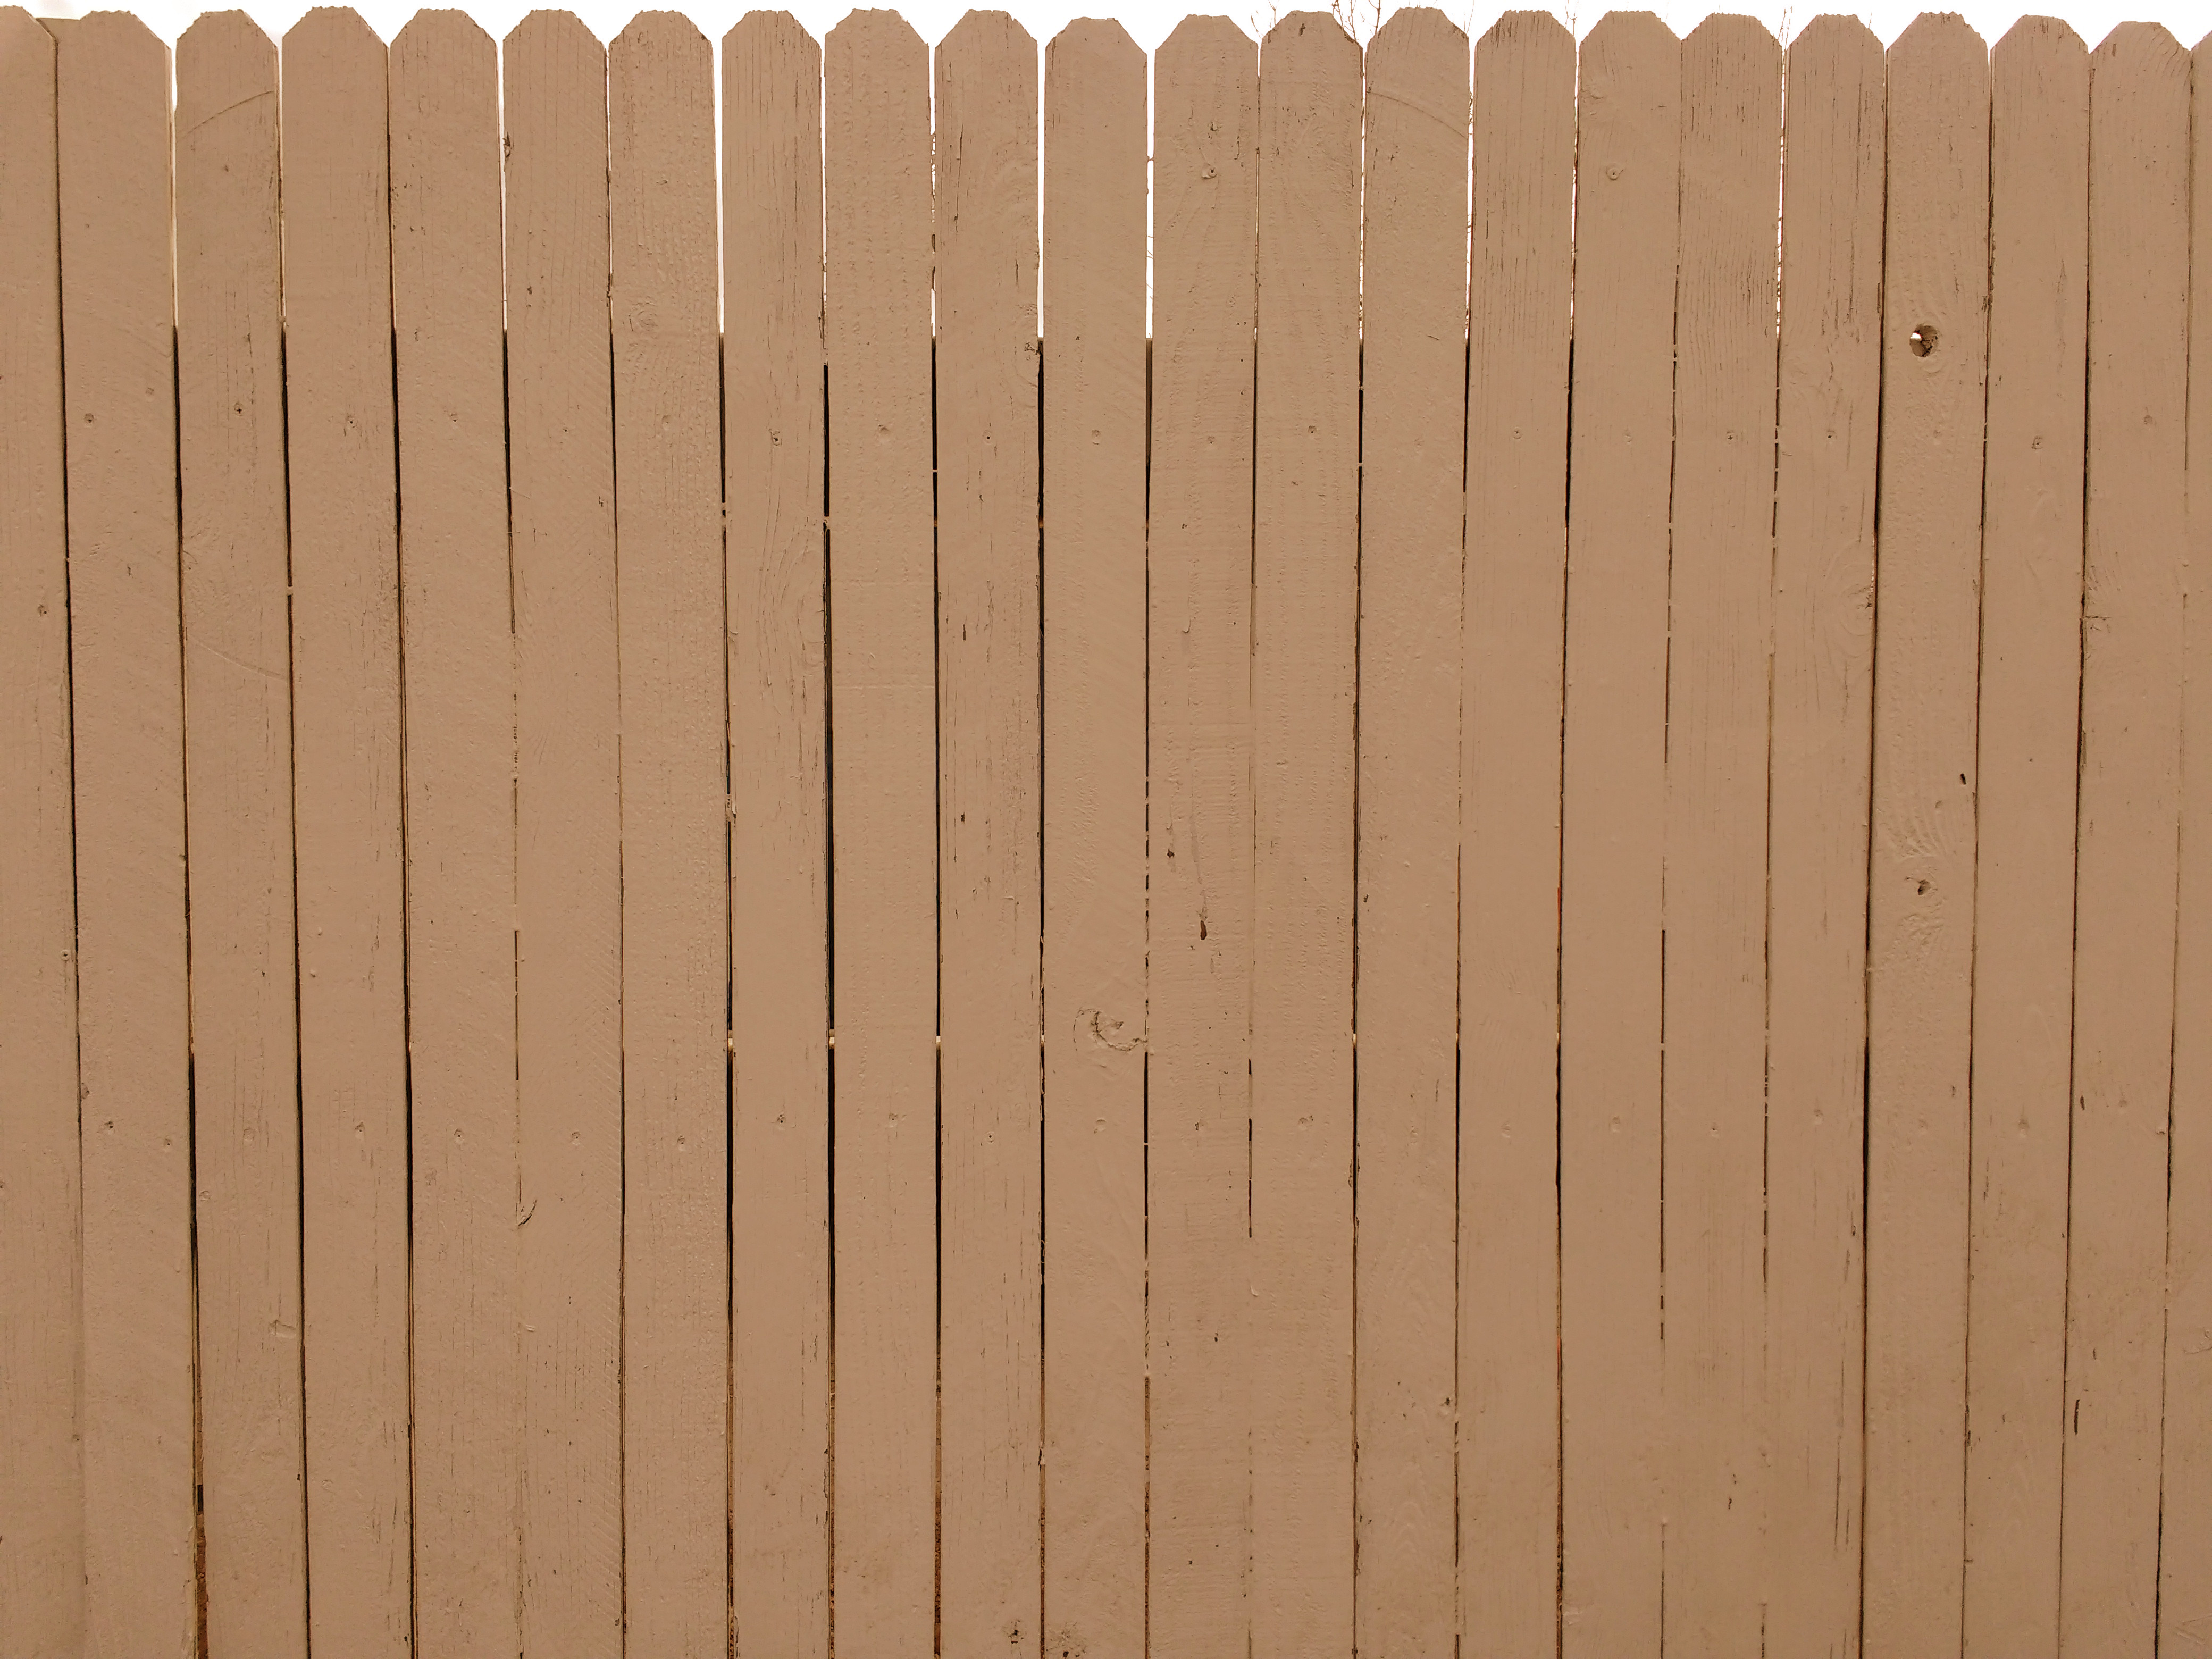 picket fence texture. Wonderful Fence Tan Painted Fence Texture In Picket